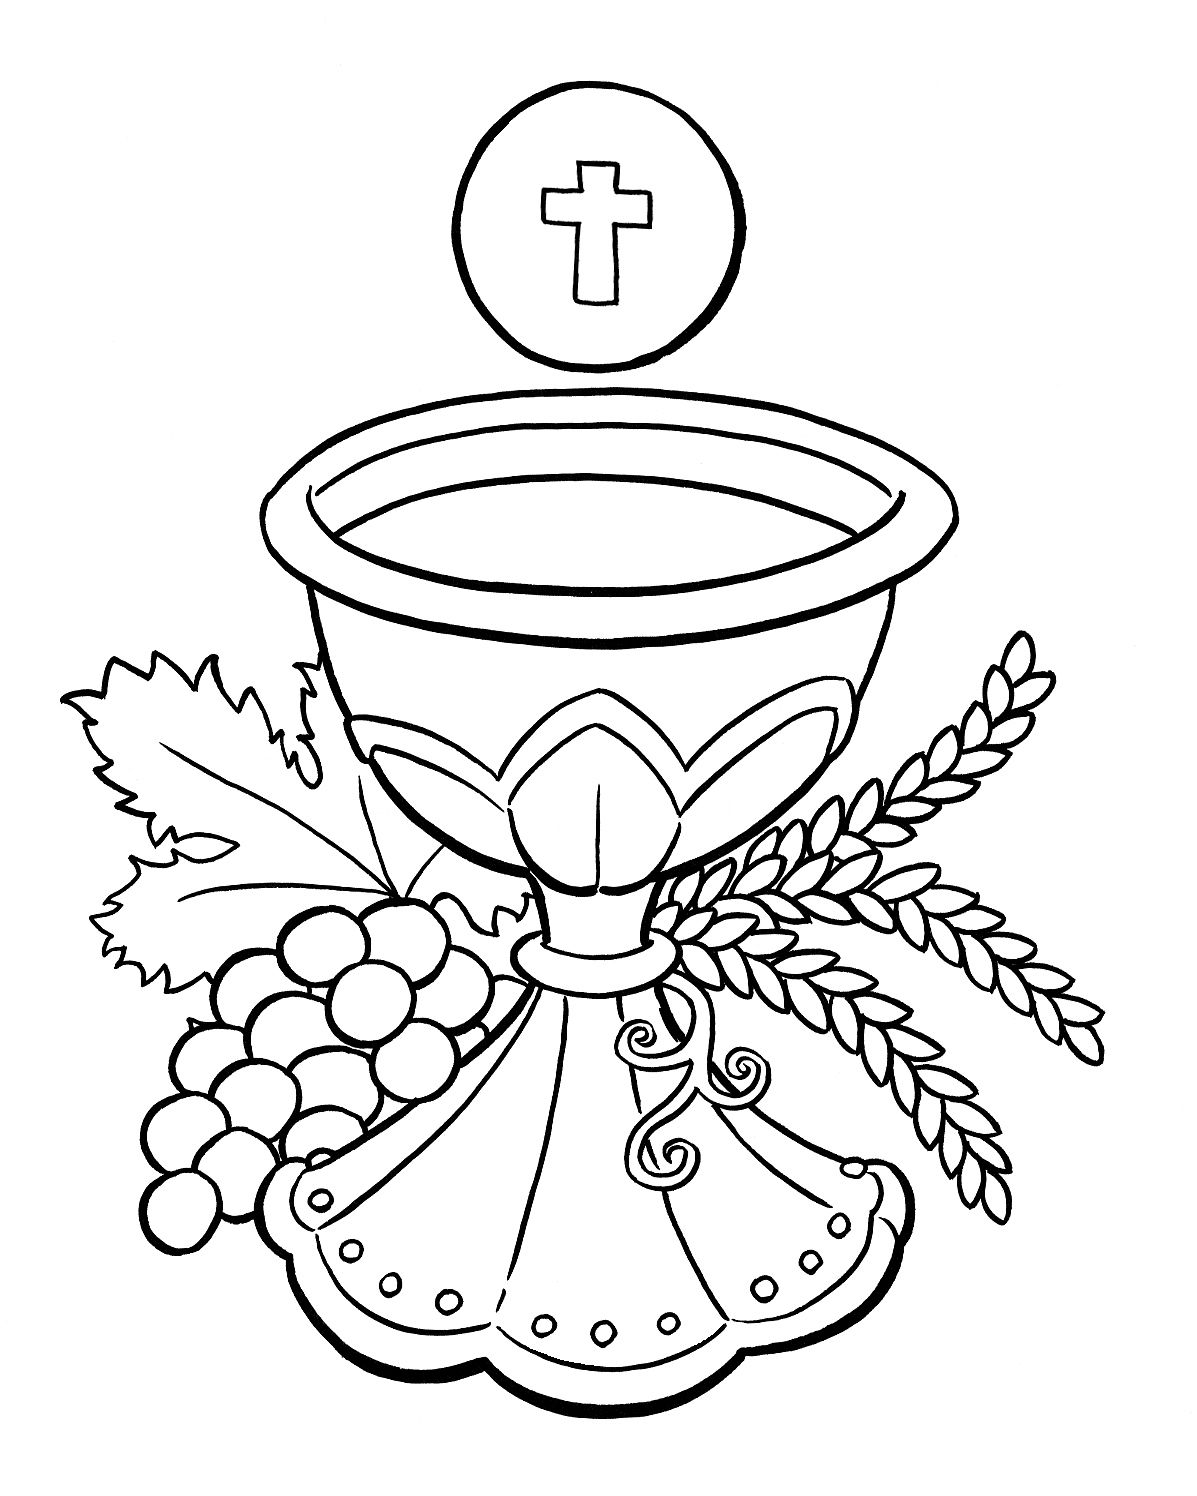 1197x1496 First Communion Chalice And Host And A Few Other First Eucharist